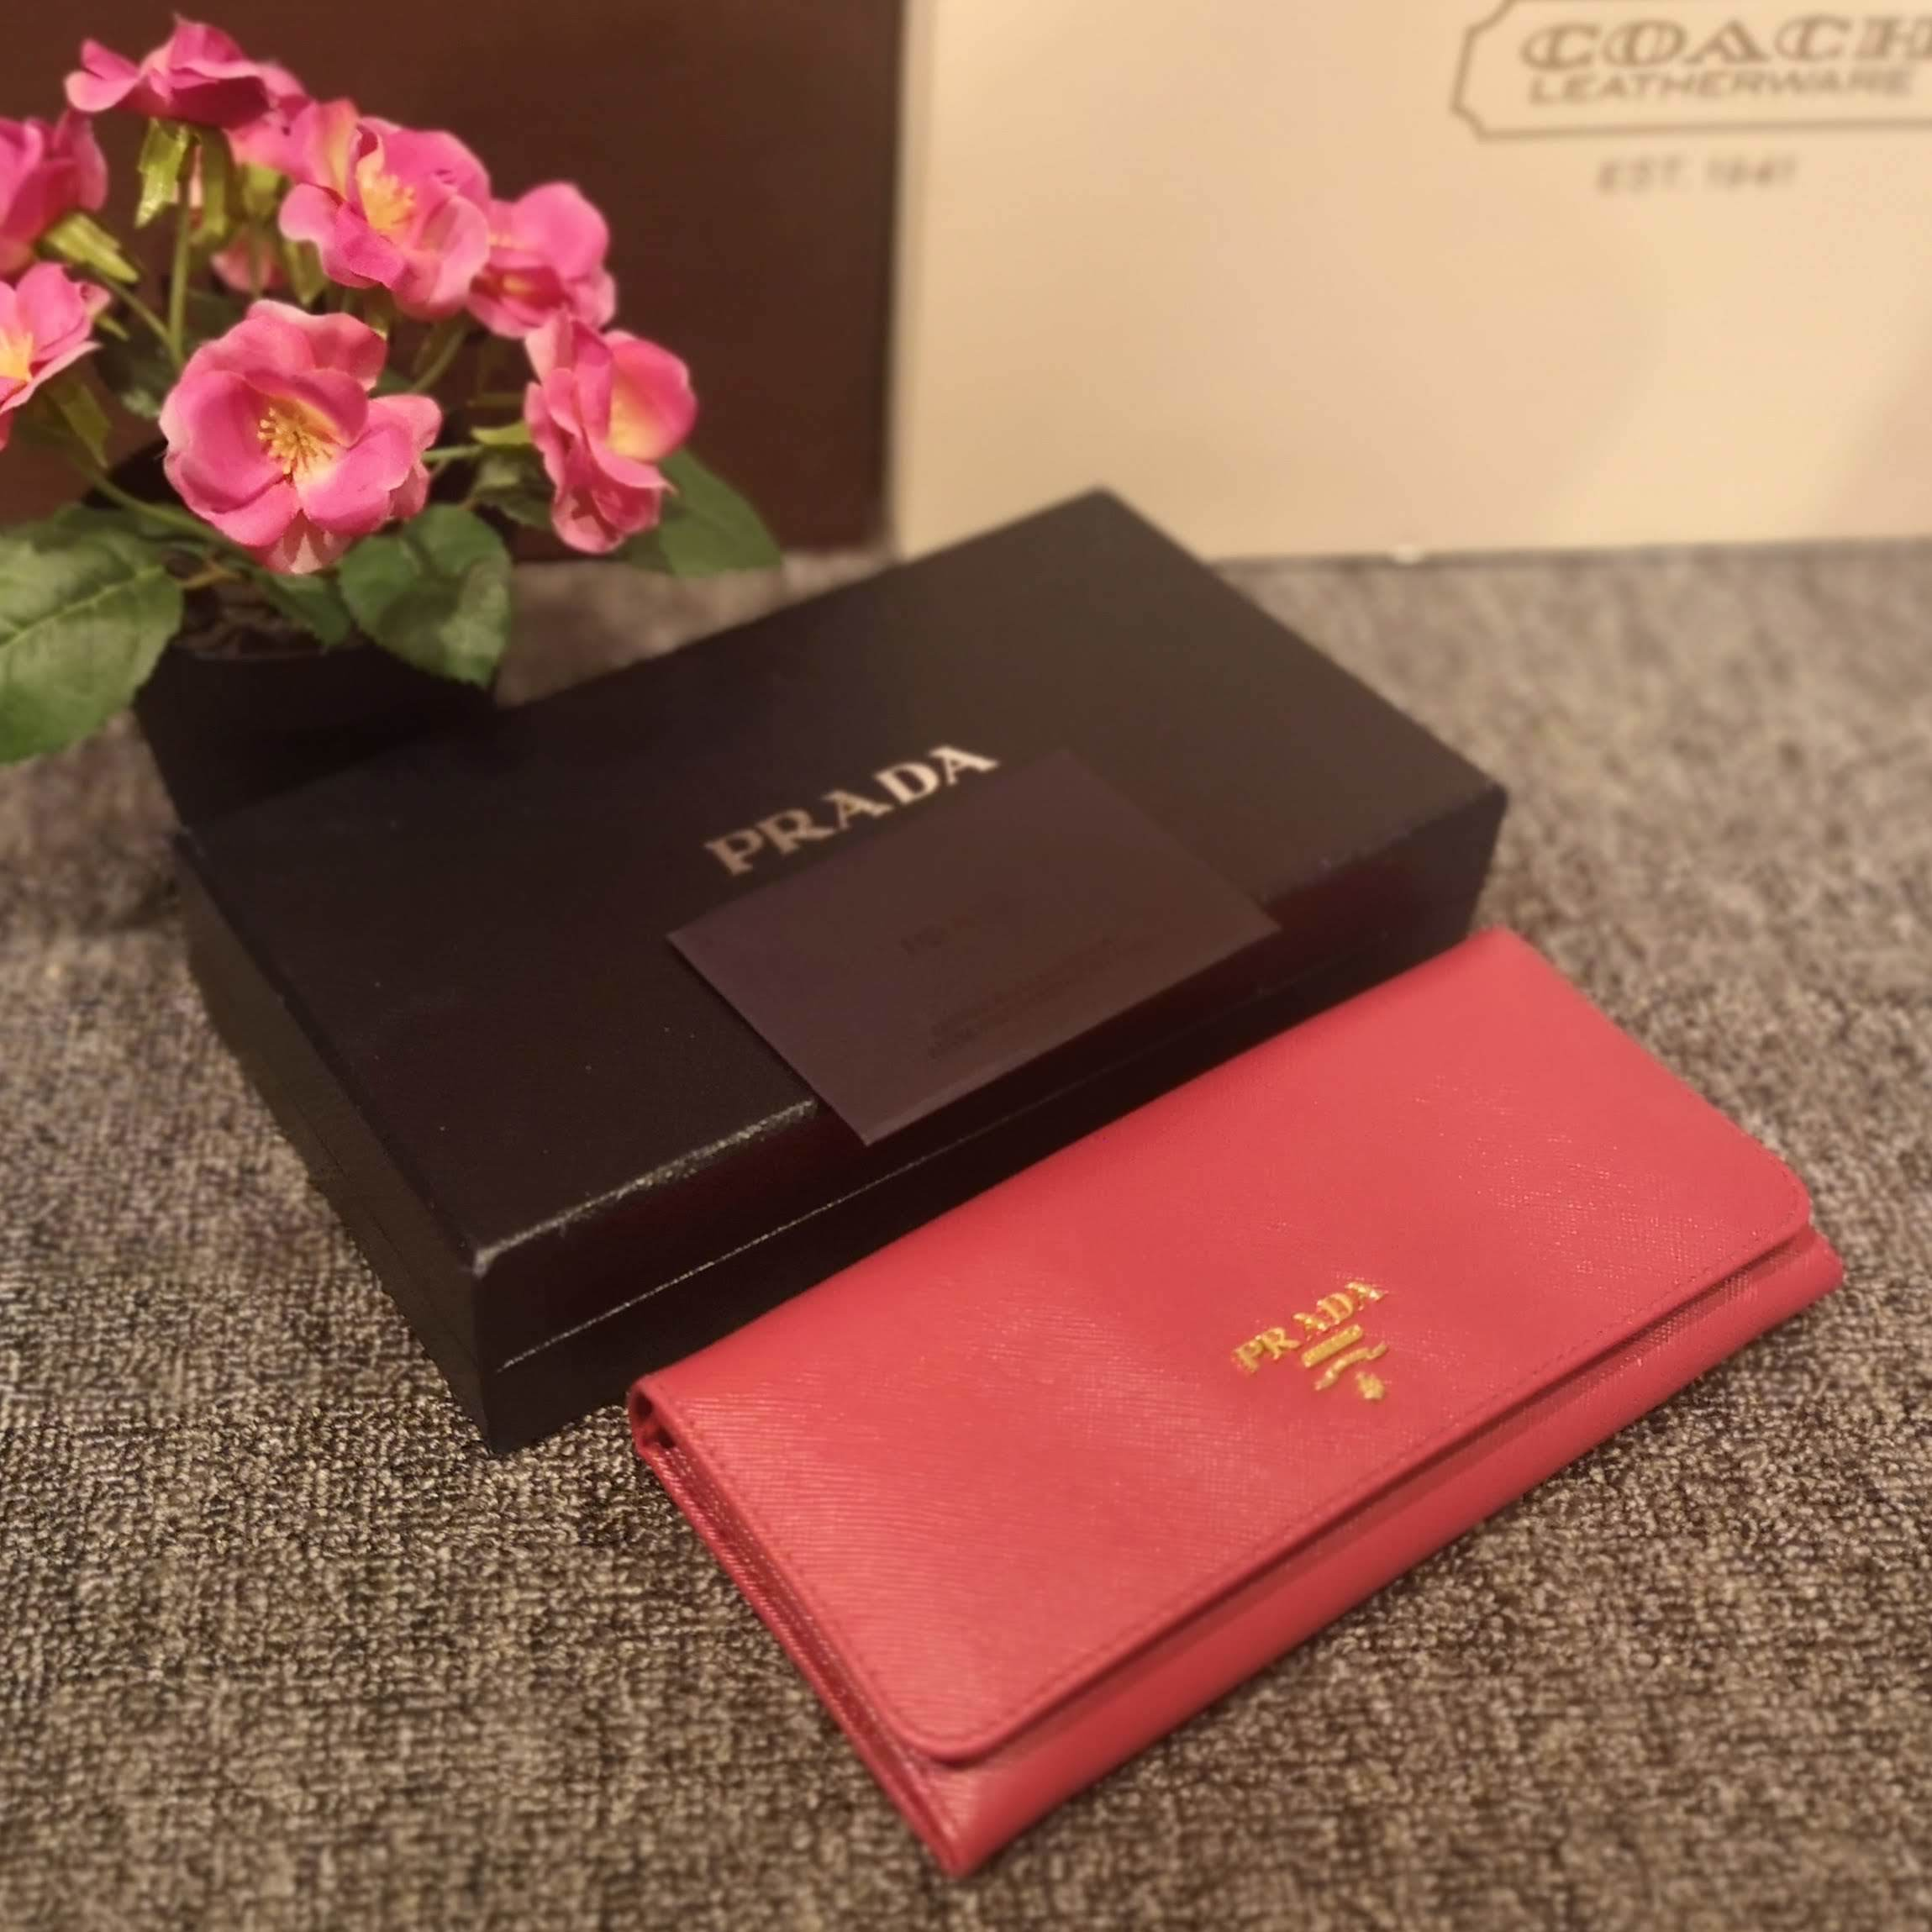 ccf621bcce0231 Home › Prada 1M1132 Saffiano Metal Flap Wallet (Peonia). jane2019 (11).jpg